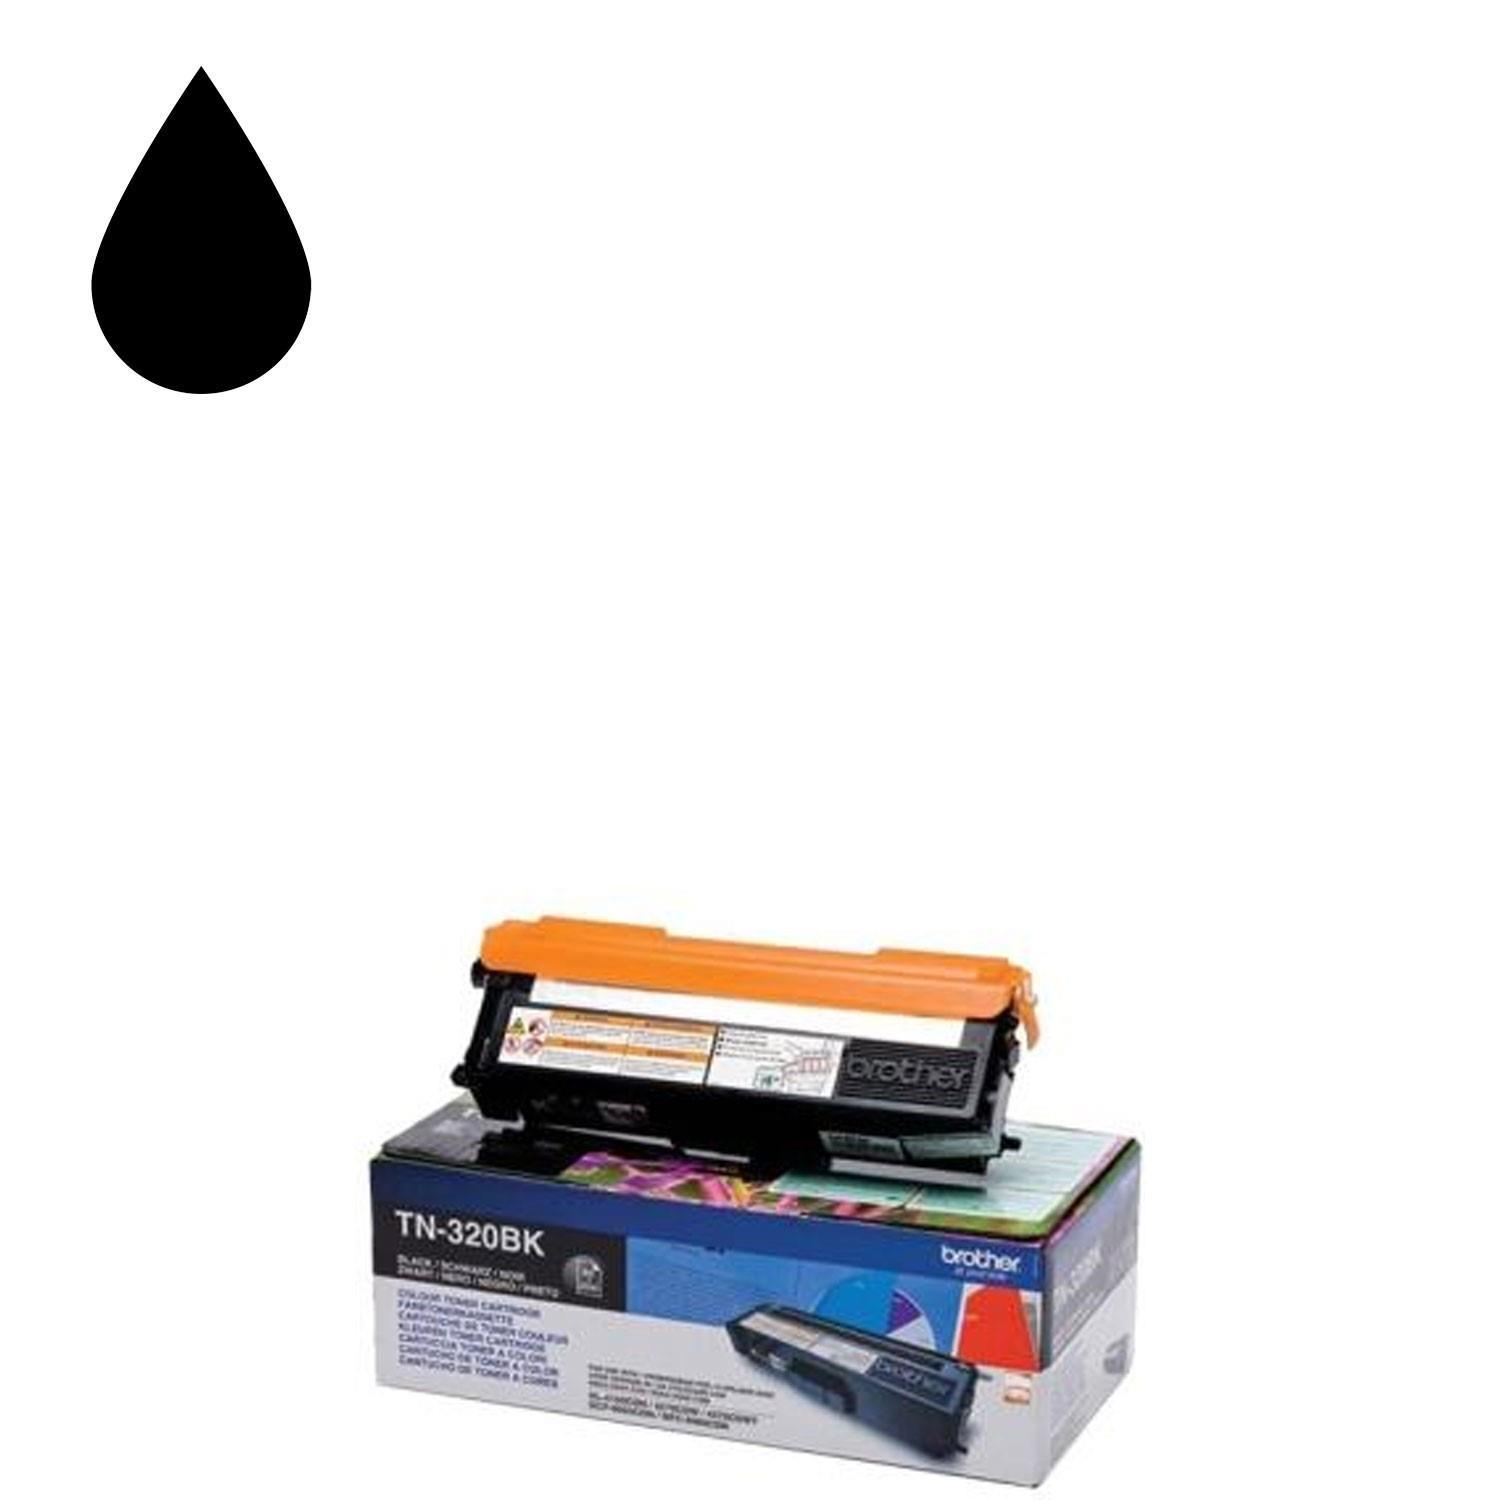 Brother TN-320BK Toner Cartridge - Black